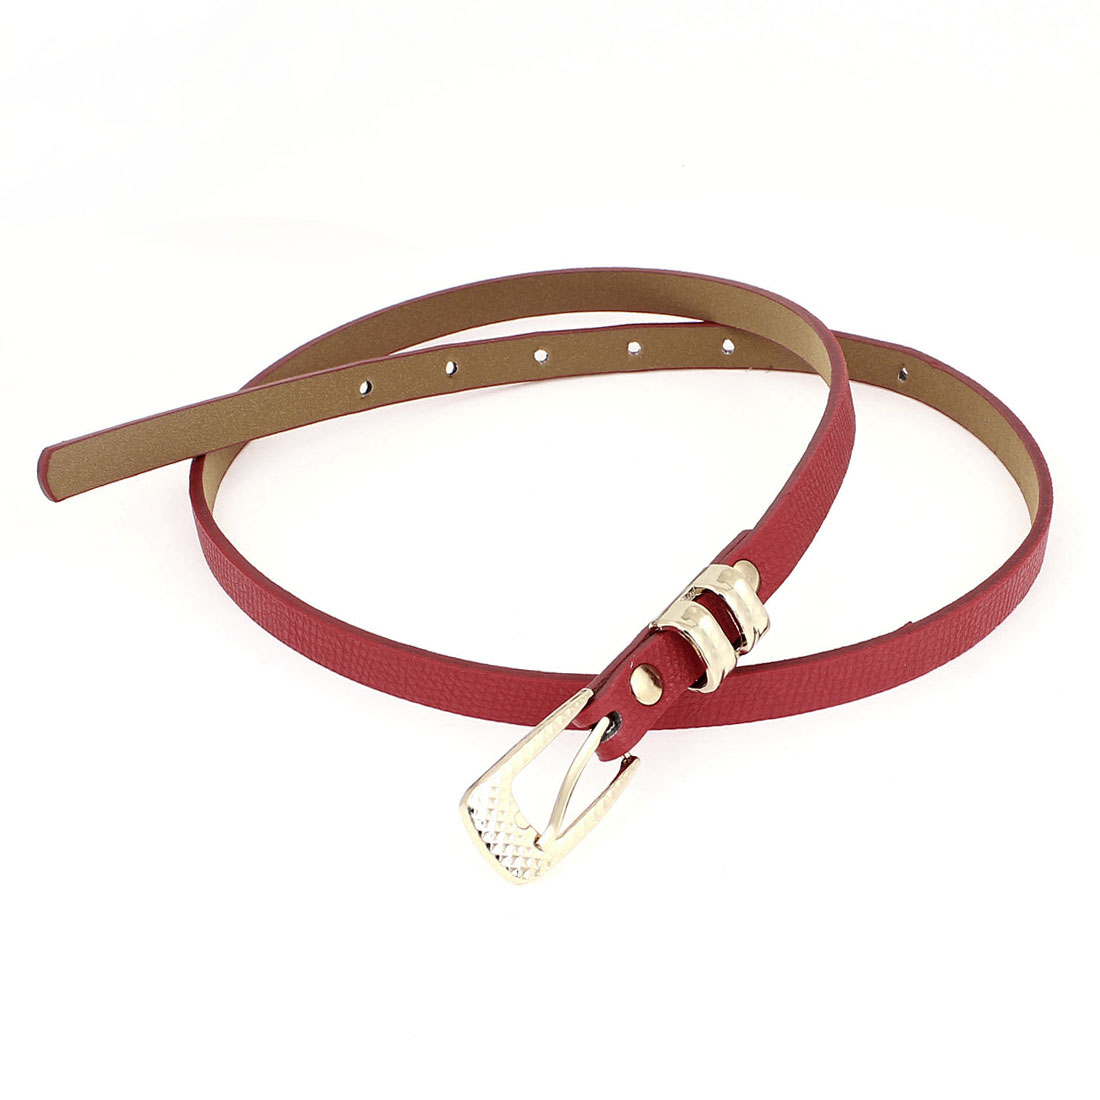 Lady Prong Pin Buckle Red Faux Leather Textured Band 1.2cm Width Thin Waist Belt